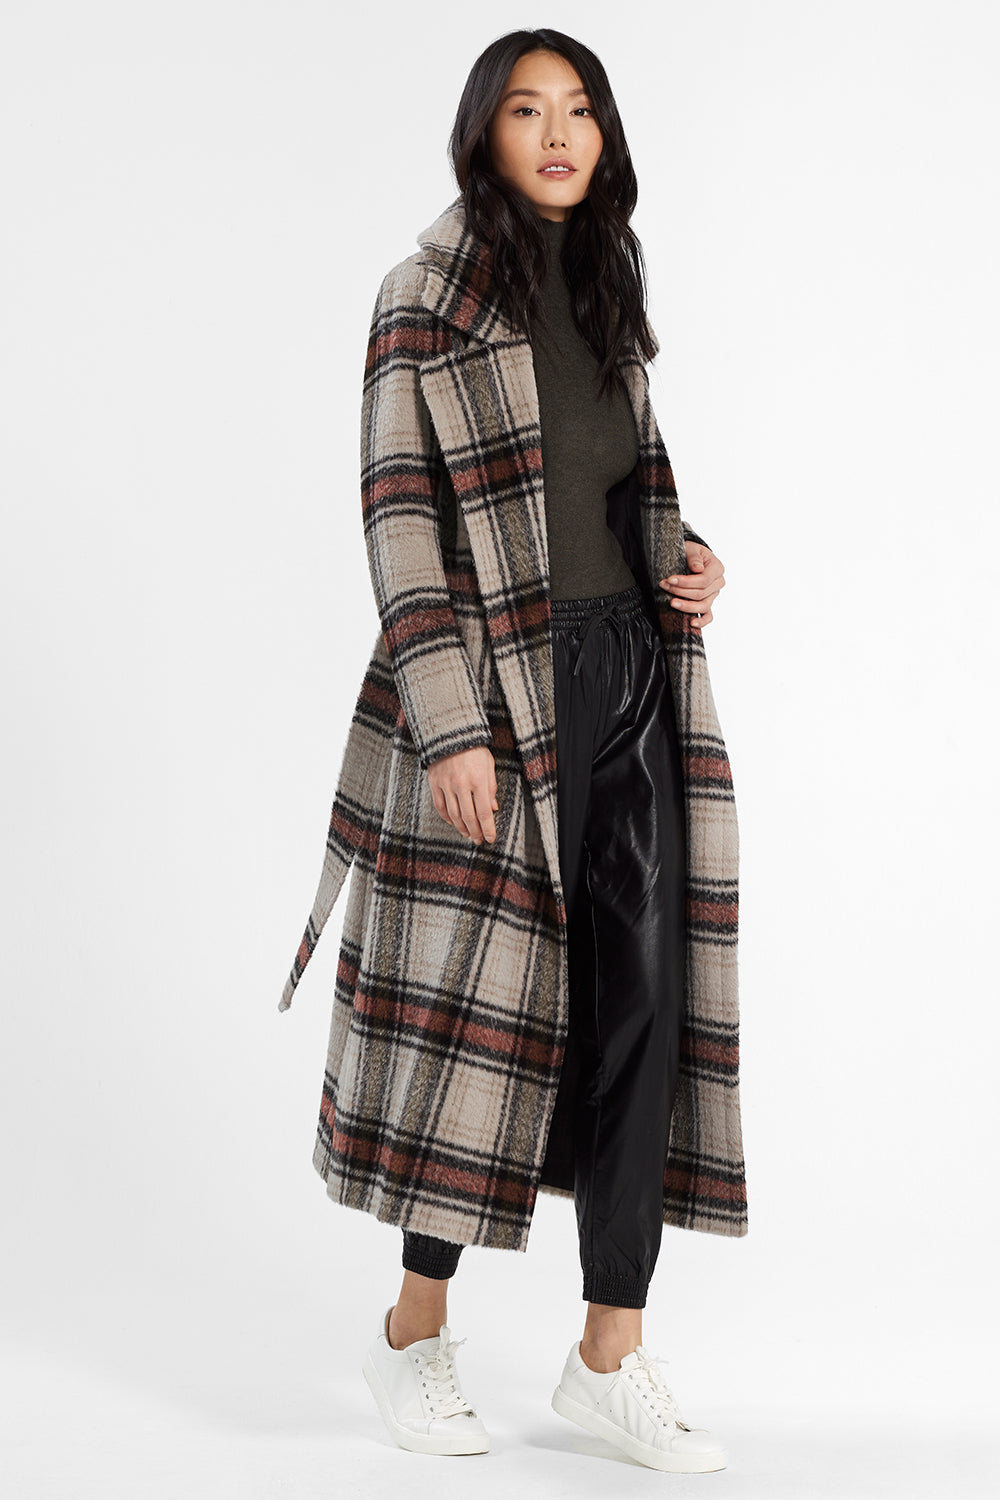 Sentaler Plaid Long Notched Collar Wrap Coat featured in Suri Alpaca and available in Sand Plaid. Seen open.